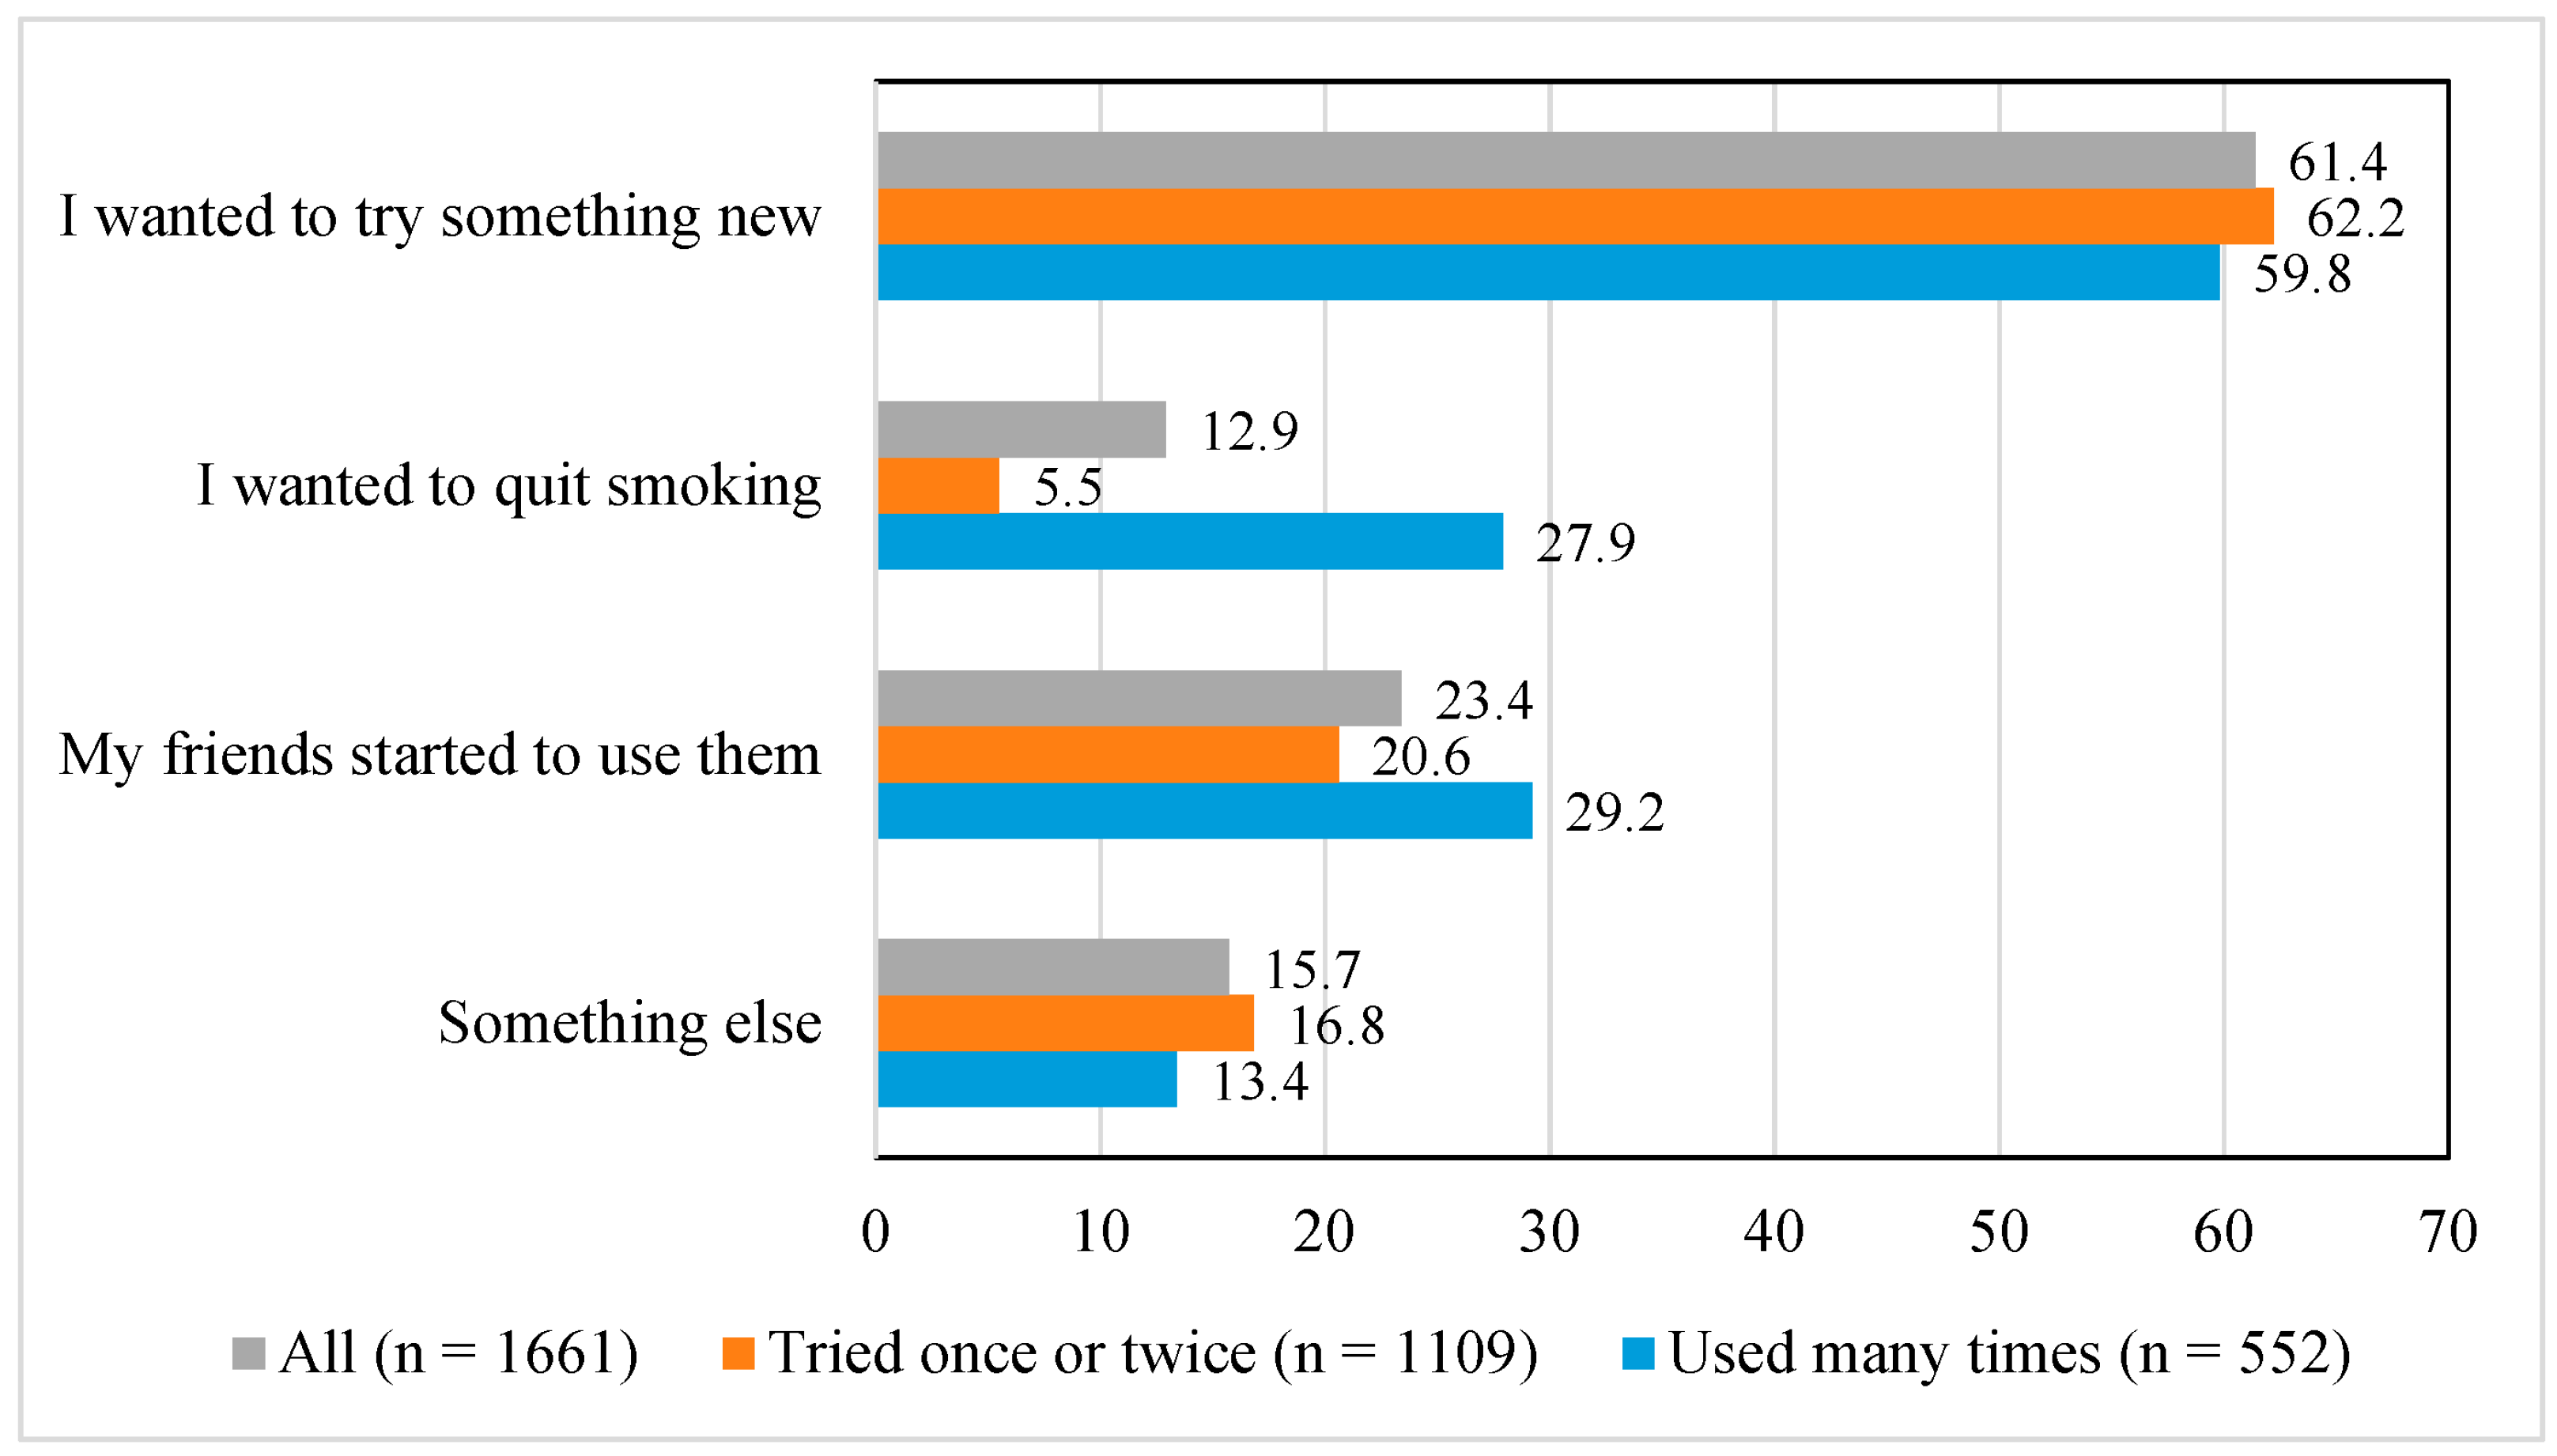 IJERPH Free FullText Changes In Electronic Cigarette Use From - Free invoices and estimates tobacco online store